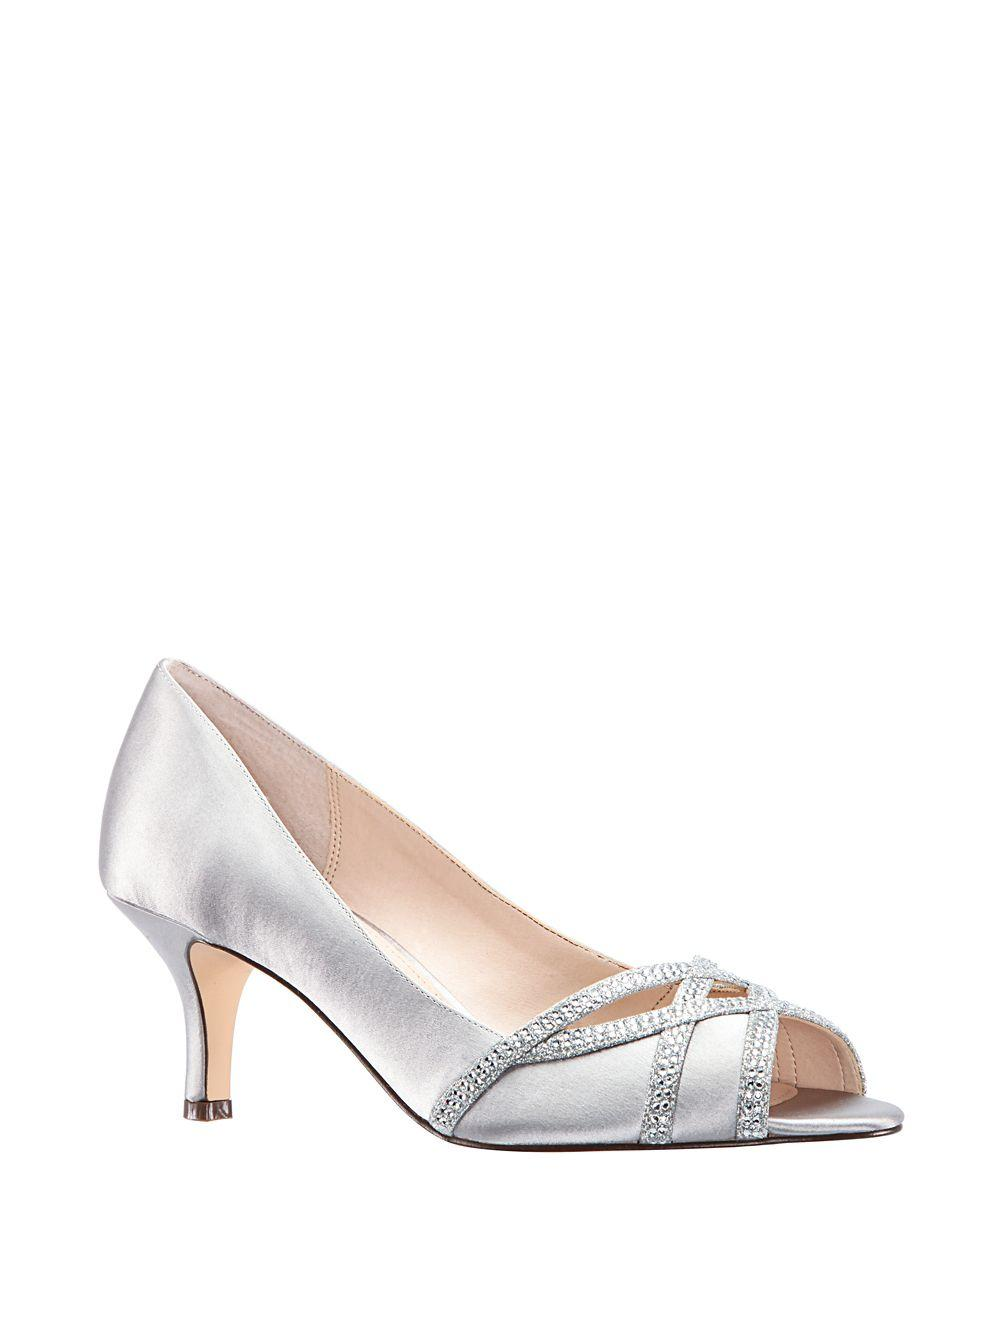 ded57f5f53e0 Lyst - Nina Manon Embellished Peep-toe Pumps in Gray